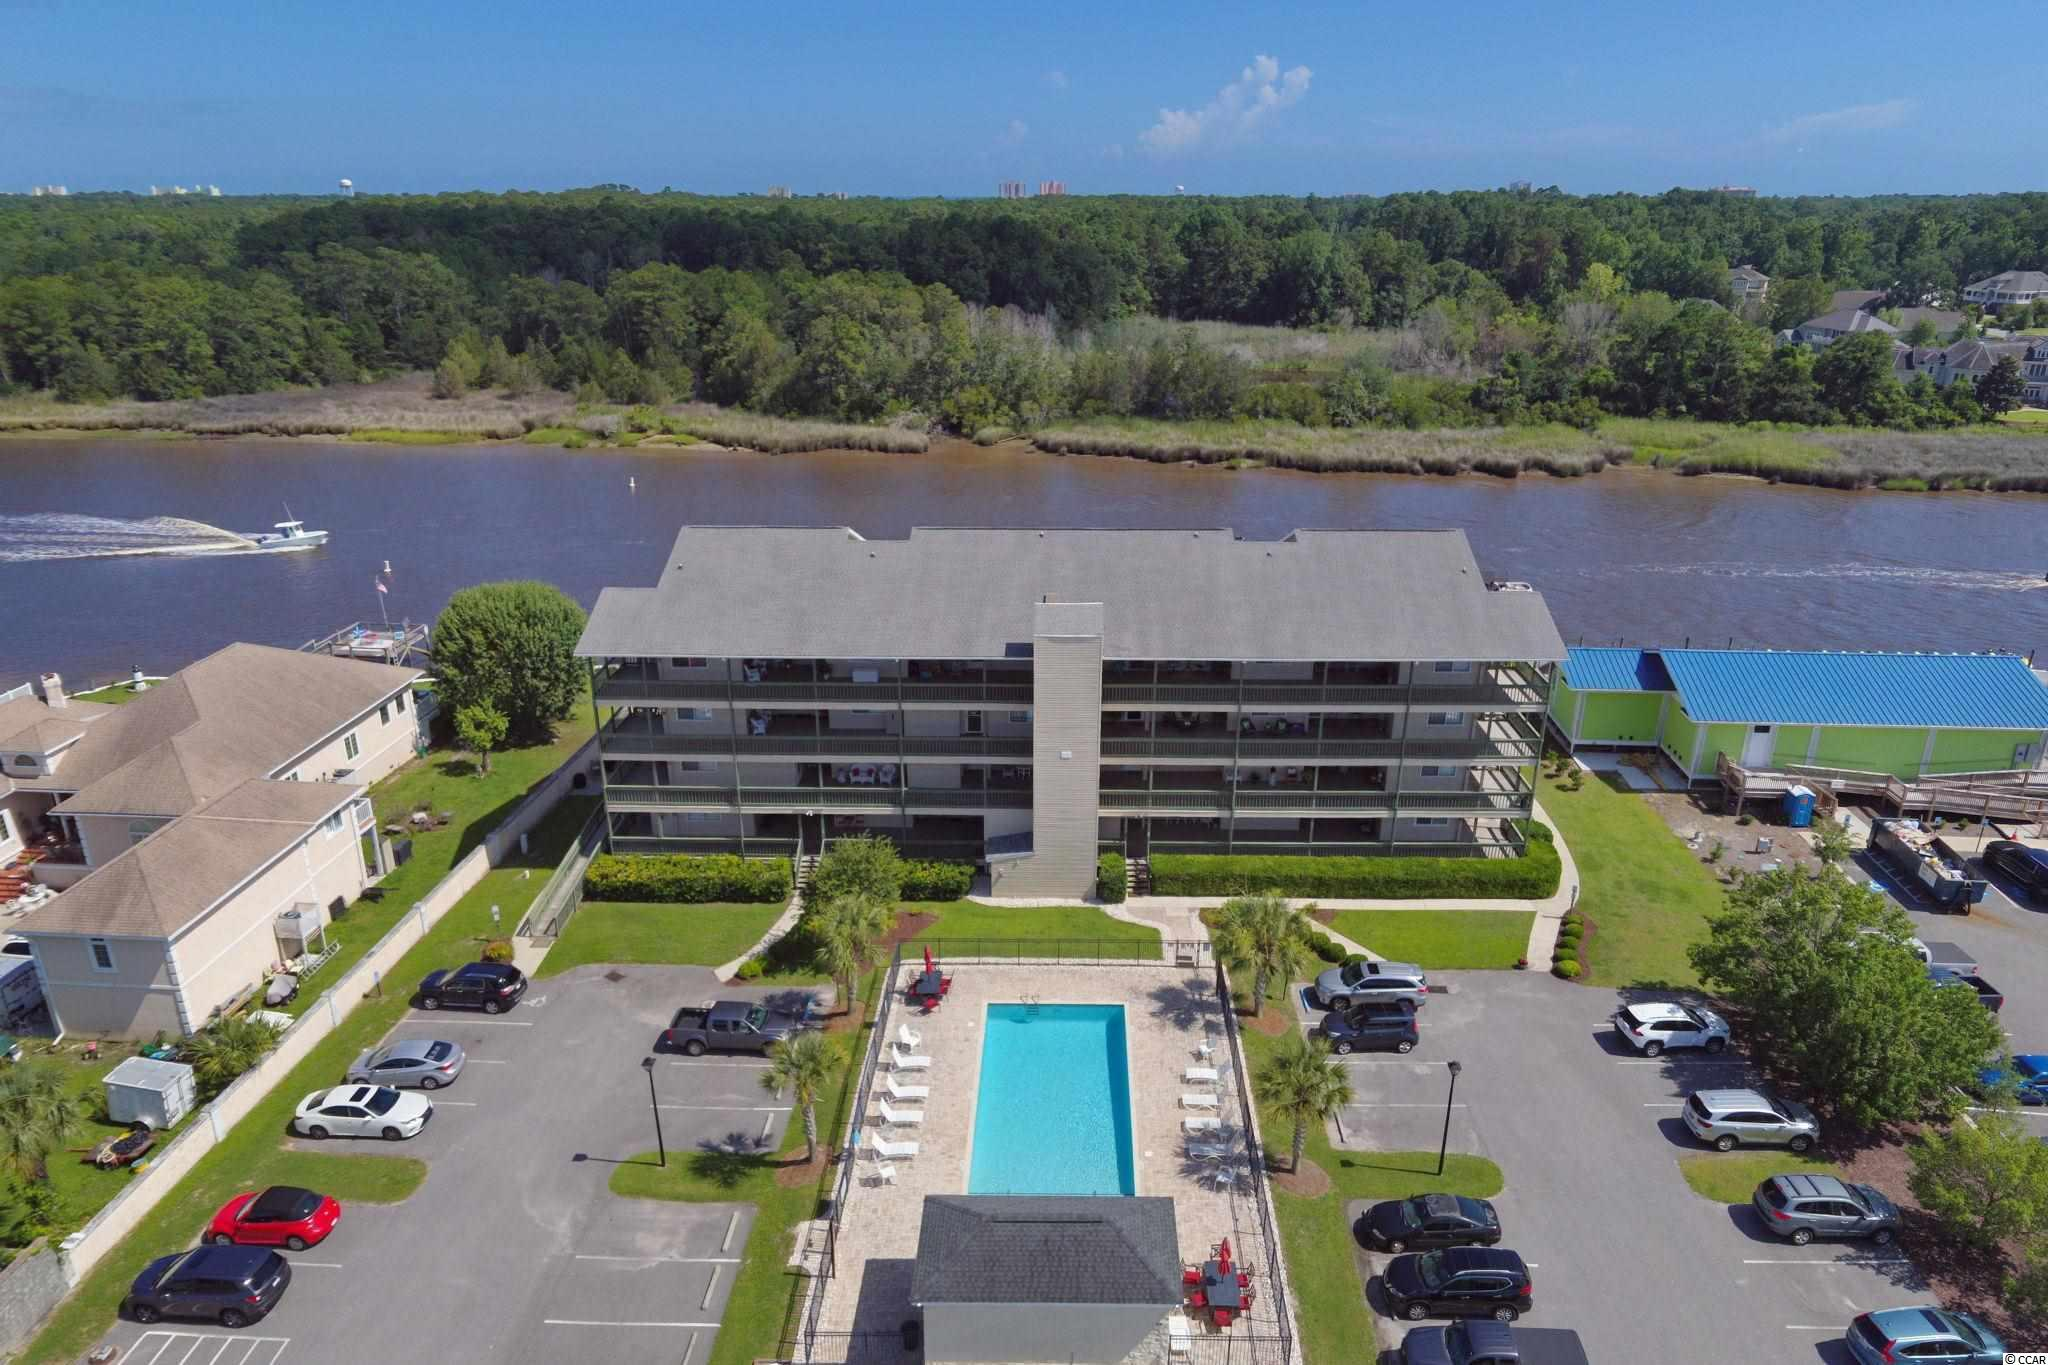 """** We are in multiple offer situation. Please present your highest and best offer by Saturday, July 3, at 1 pm** Direct waterway condo for this price??? WOW! Just take your seat on the porch, and never get up!  So close to the water, you'll feel like jumping onto one of the many boats and jet skis driving by! Completely remodeled in the style you will love, every detail has been done to perfection! Smooth ceilings, new kitchen cabinets, ALL new doors, including sliding glass doors in living room, new pipes in kitchen and hall bathroom.  2 bedrooms, 2 full baths, with tiled showers, gorgeous vintage laminate flooring, stainless steel appliances, white quartz countertops, accented backsplash, custom crown molding and judges panels in hall and bath enhance the beauty of this immaculate unit. Plantation shutters and window treatments convey and add that classic appeal to this condo.  So many features, you just have to see to appreciate!  Hidden away from the main streets, Kingsport condos offer a pool, elevators, a quiet building, but most of all, views for days of the waterway. Located in Little River, close to the Little River Waterfront, with gambling boats, restaurants, boat charters, and many shops to while away your time spent here. Either 2nd home of permanent residence, you will not tire of """"boat-watching"""" in this tranquil spot! Marina/boat storage/jet ski rental is next door for your convenience. Rarely does a unit come available in the building, so don't delay, as, you know, in this crazy market, it will be gone! Call now for your appointment to see this one!  Square footage is estimated and buyers are responsible for verification."""